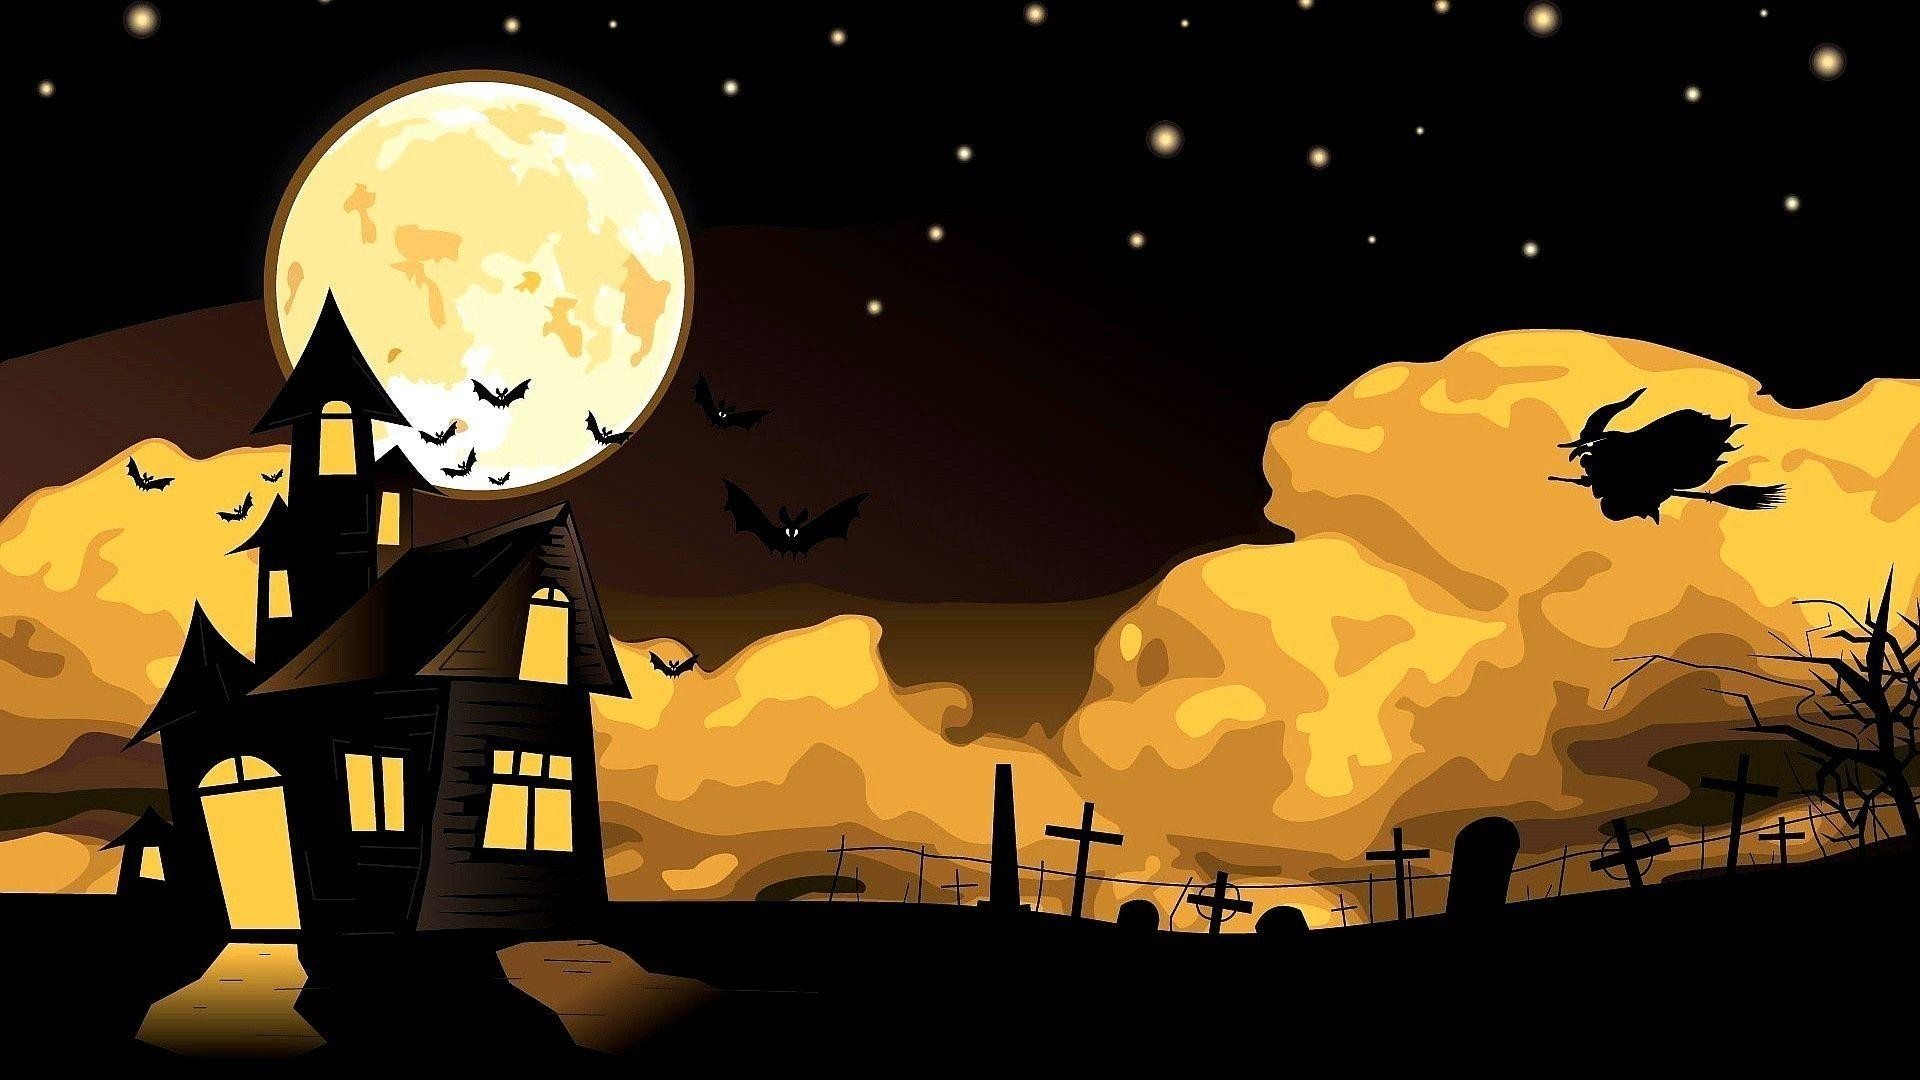 1920x1080 full-size-hd-halloween-desktop-backgrounds-1920×1080-screen-WTG3055332